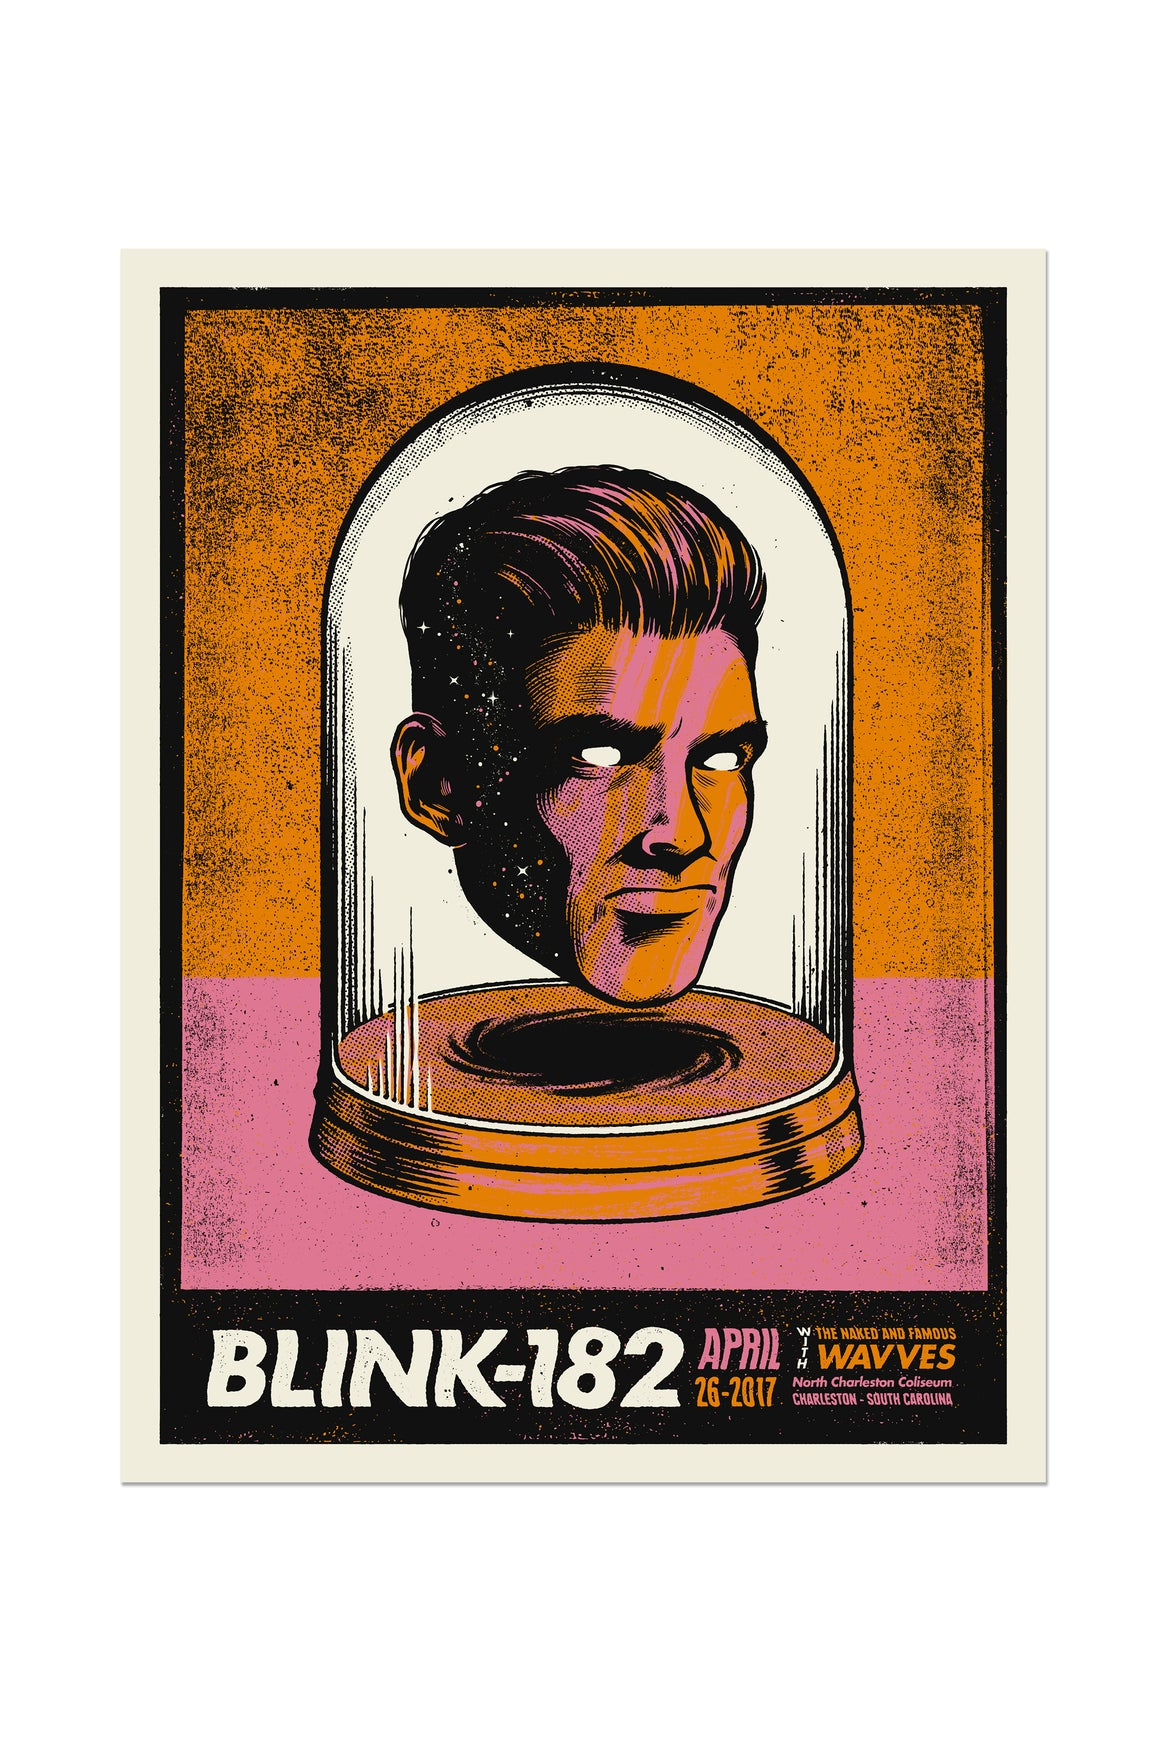 blink-182 4/26/2017 Charleston, SC Event Poster